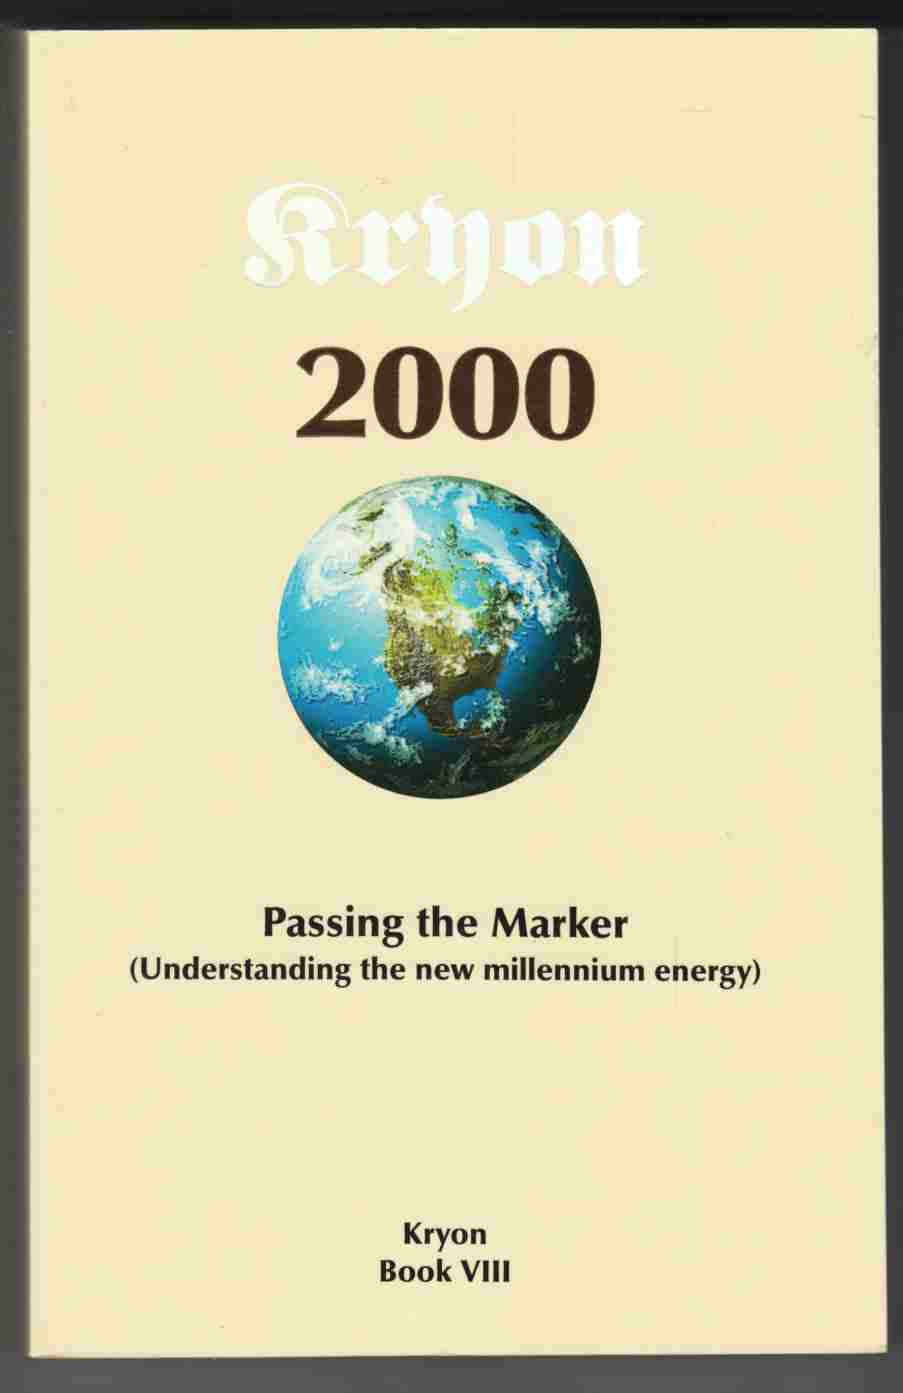 Image for Kryon 2000 Passing the Marker Understanding the New Millennium Energy Kryon Book VIII